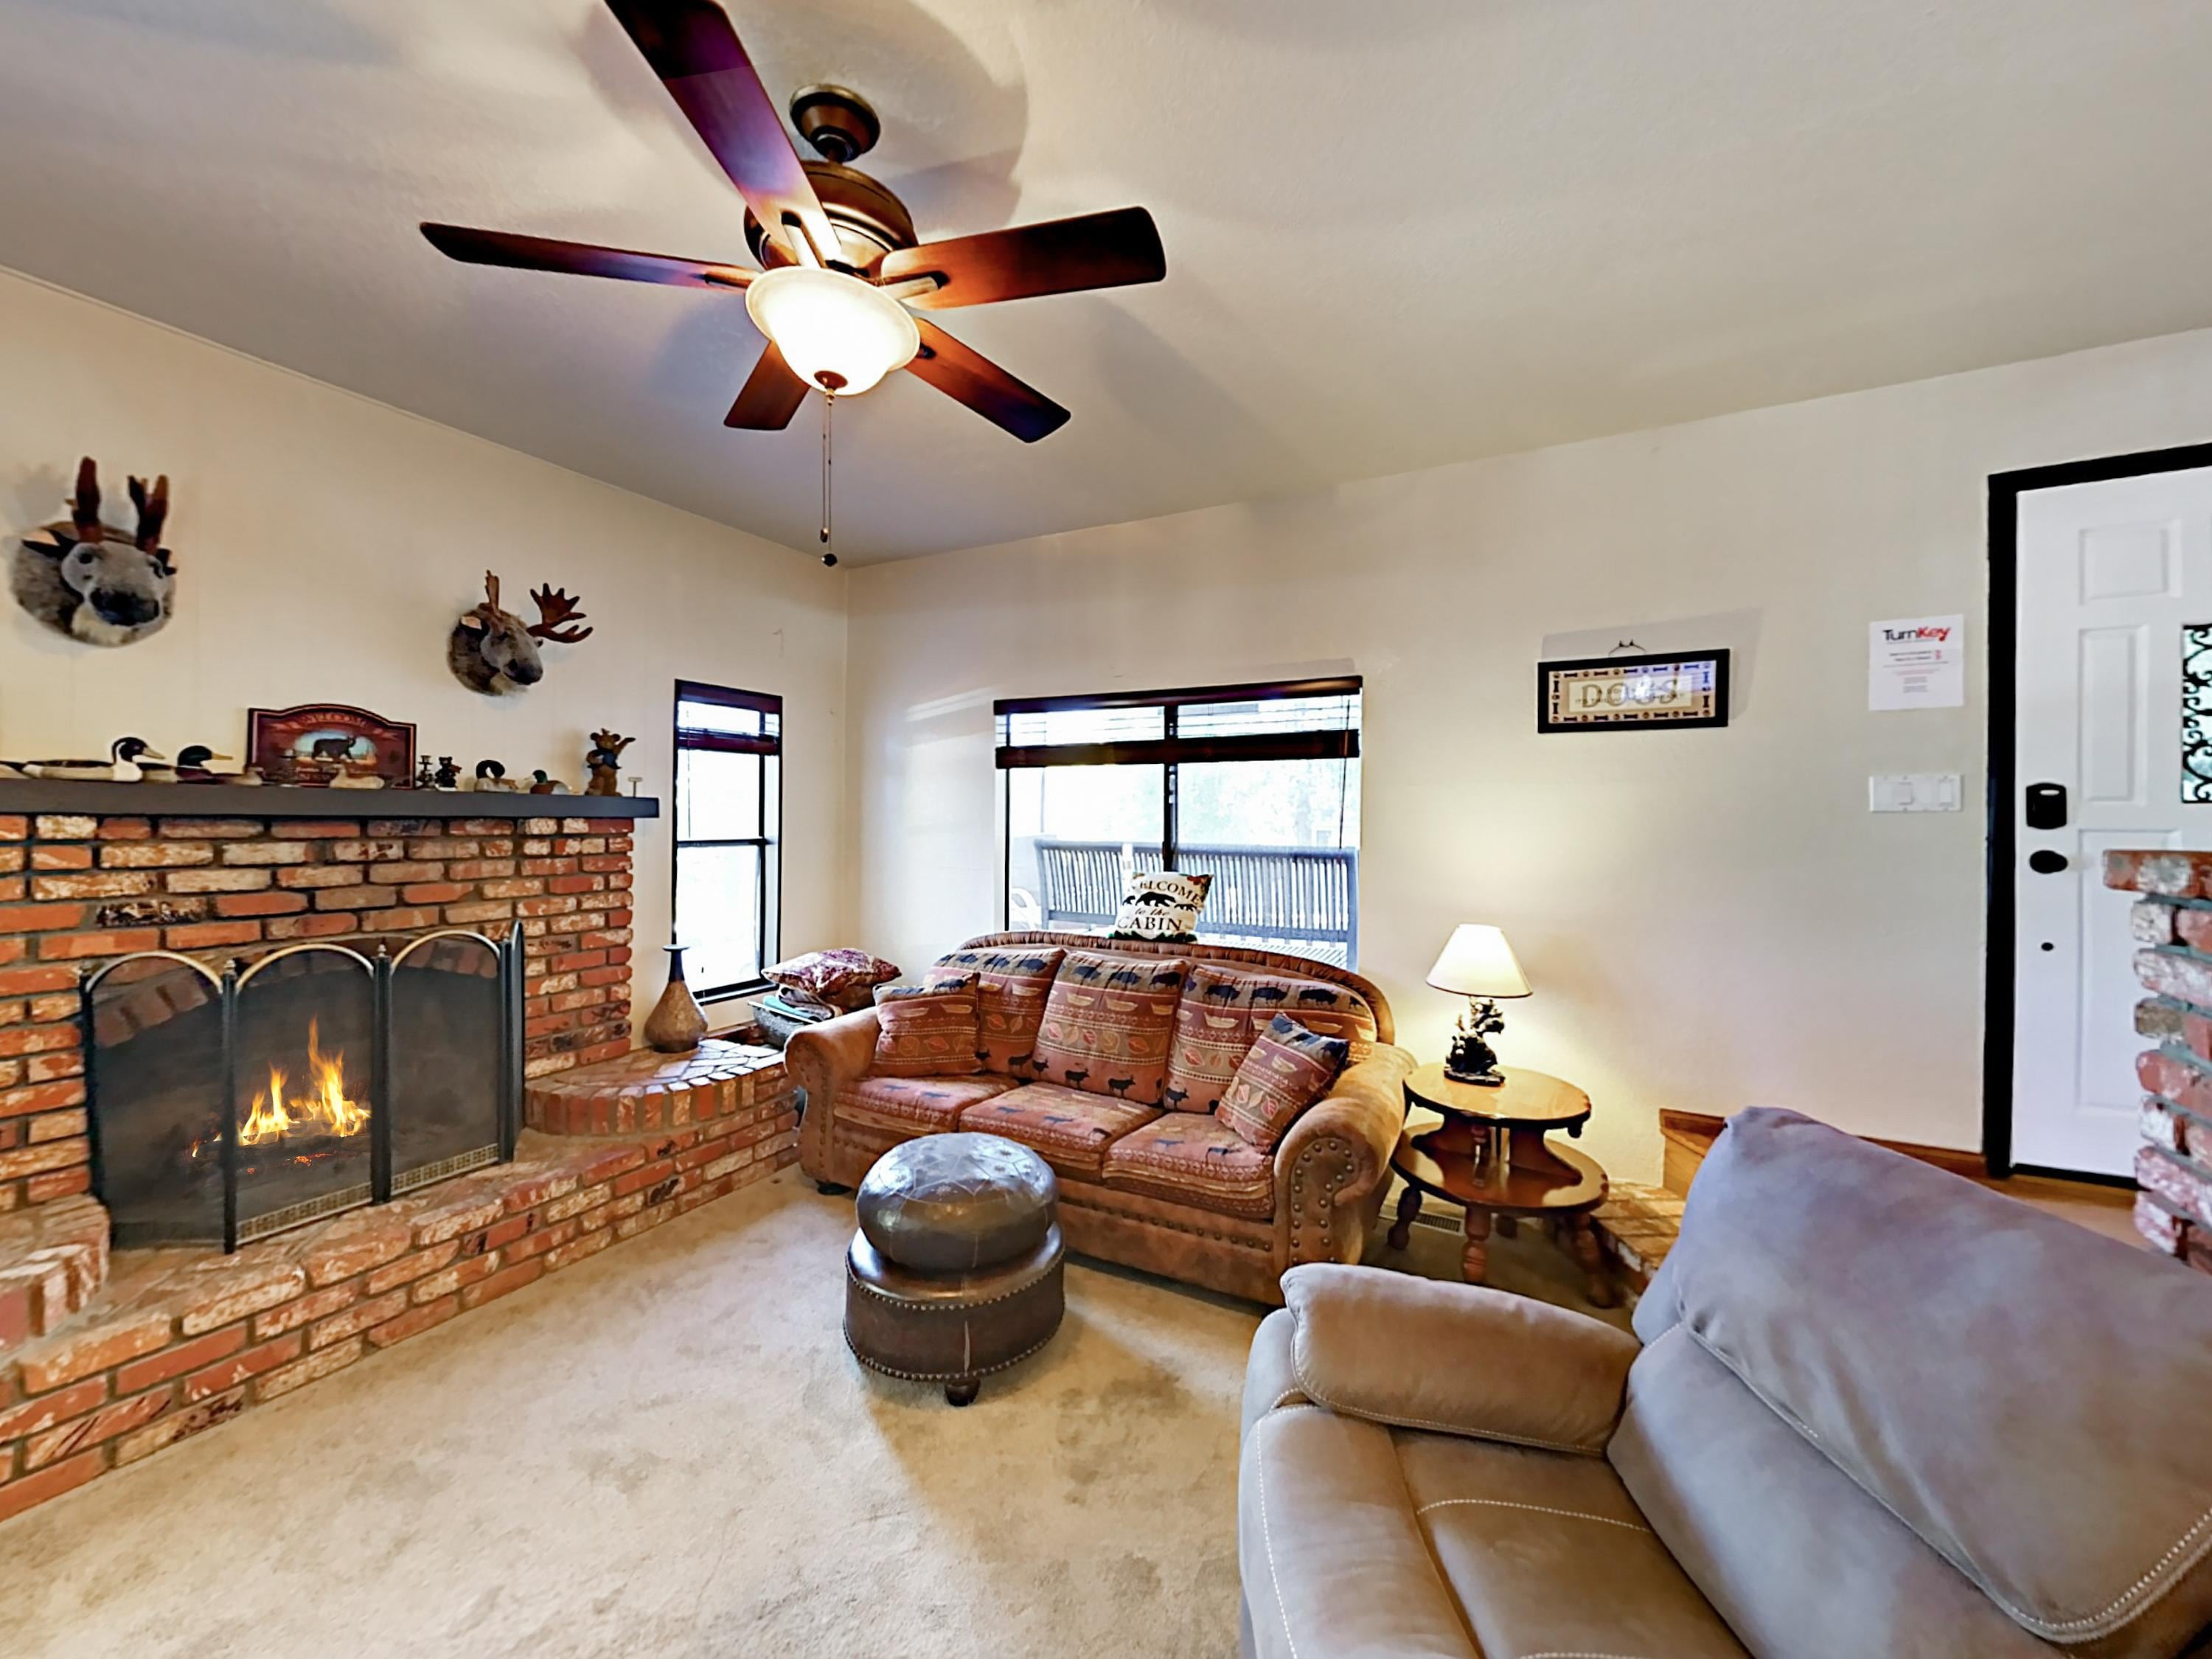 Property Image 2 - Lazy Bear Cabin 2BR: Hot Tub, Ping-Pong & Fire Pit